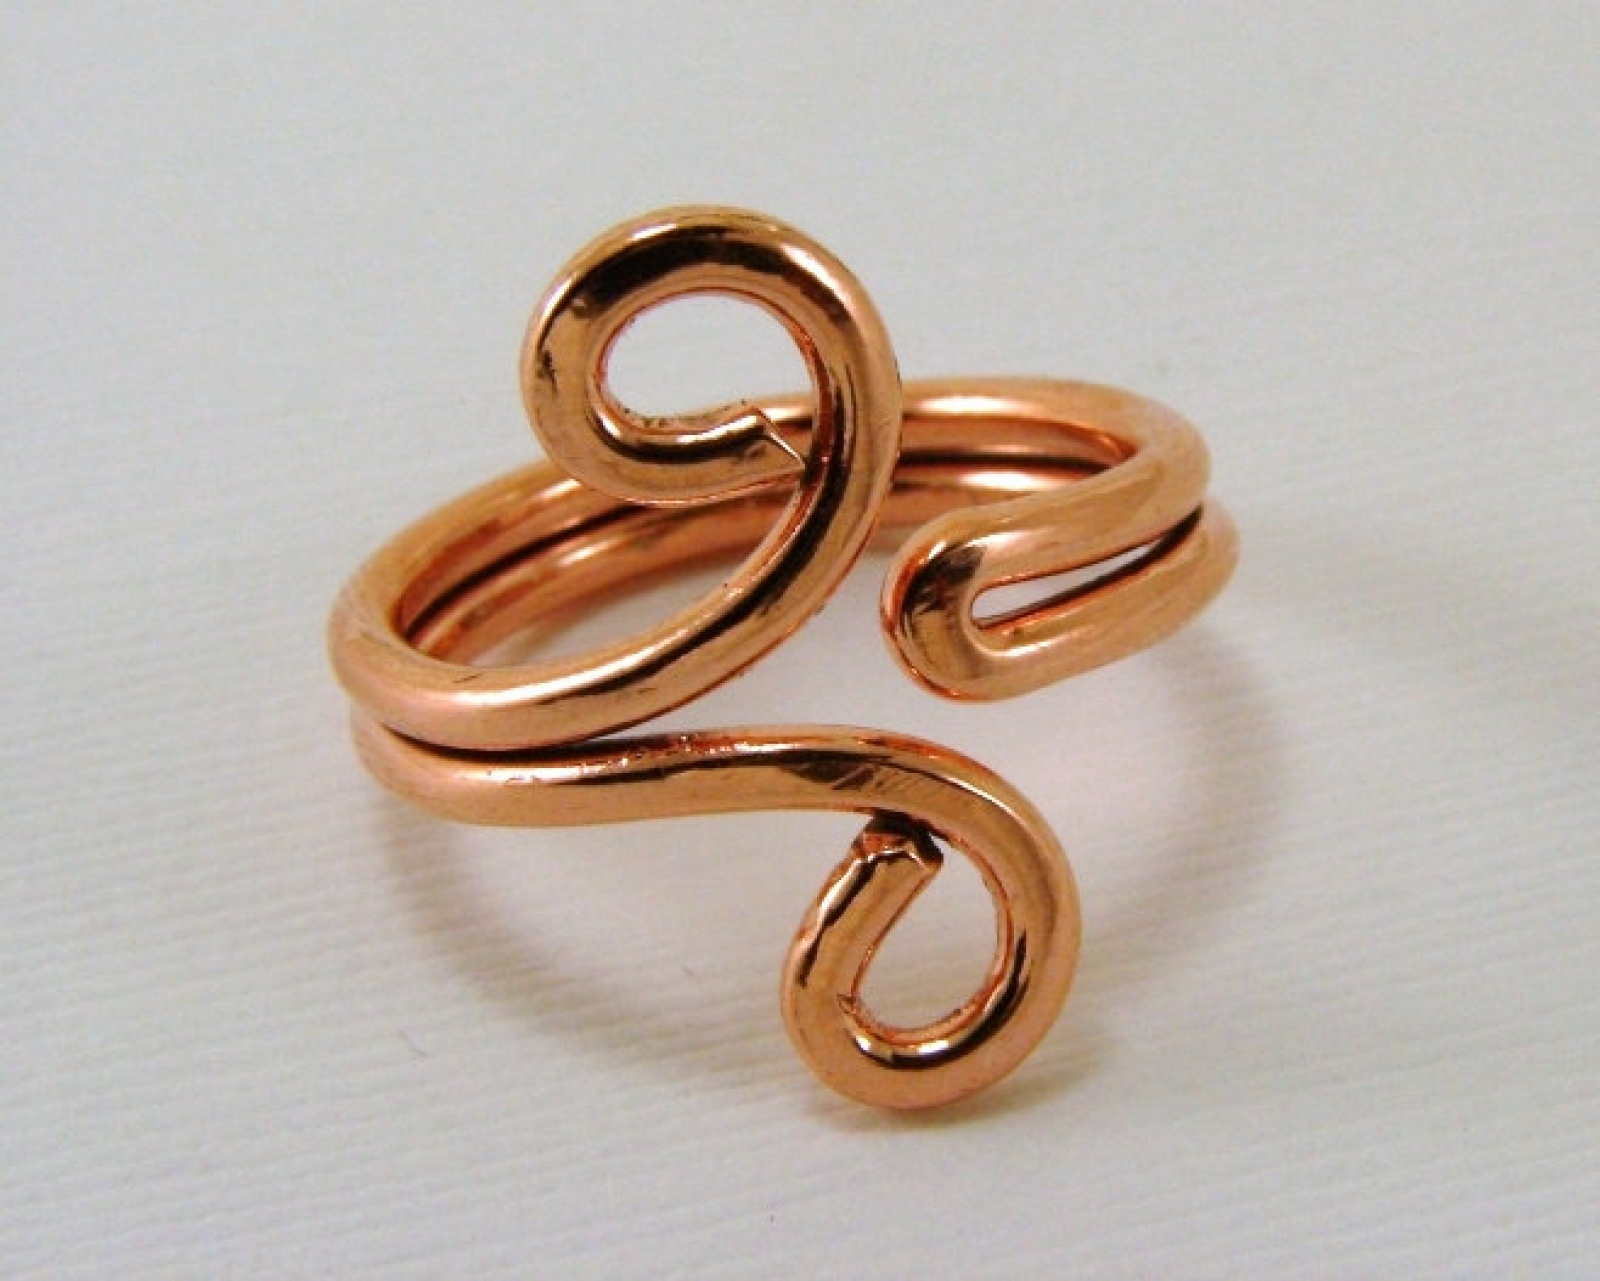 b90af6721a3cb Copper Ring - Any Size, Also Available in Sterling, Copper, and Red Brass